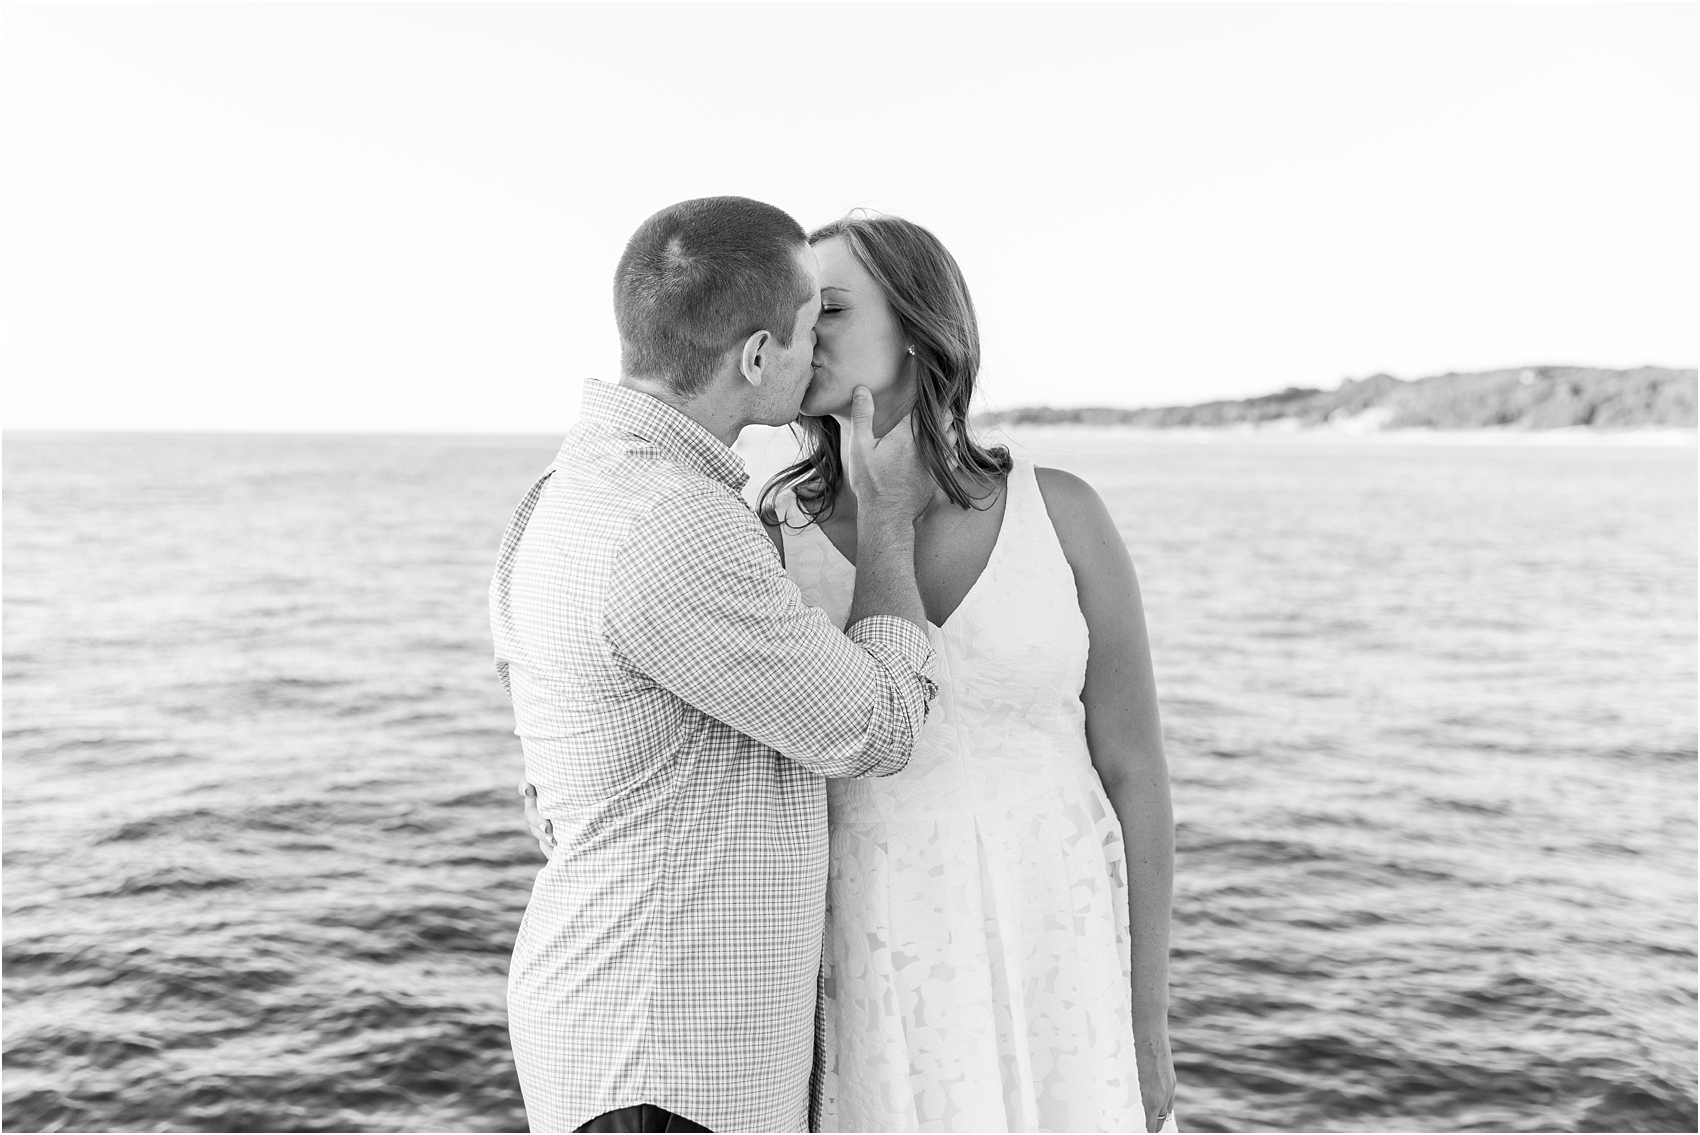 romantic-sunset-engagement-photos-at-the-lighthouse-in-charlevoix-mi-by-courtney-carolyn-photography_0012.jpg